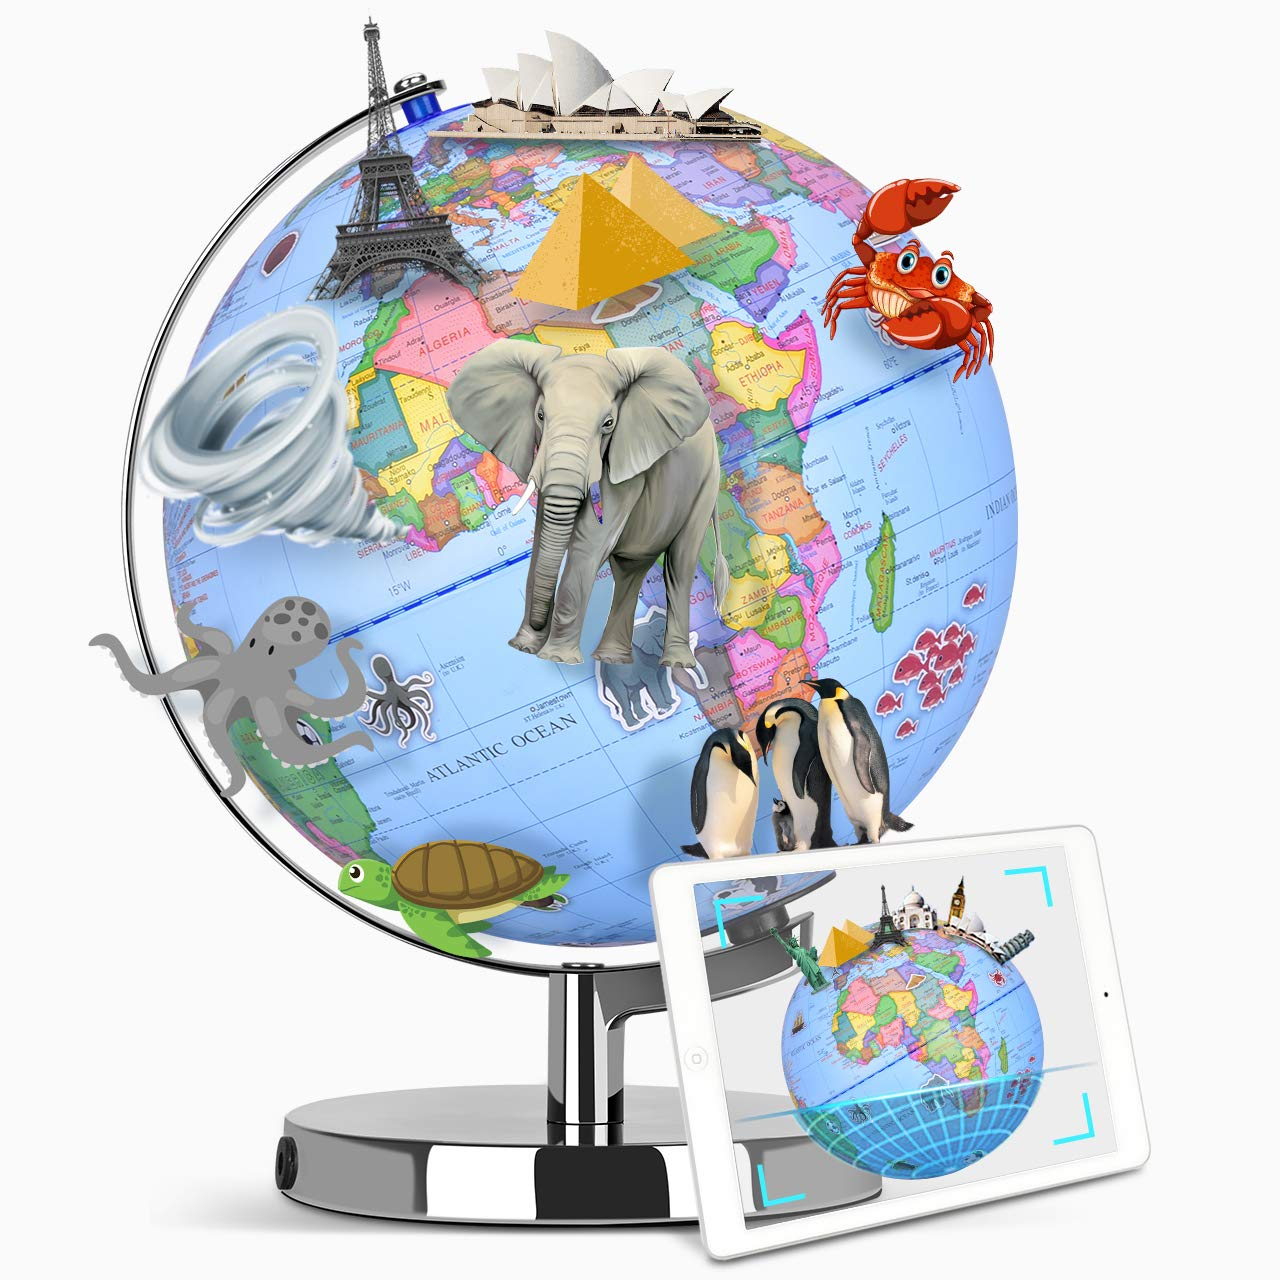 Smart Globe - Augmented Reality Educational World Geography, AR App Experience, Up to 10 Sections Educational Content, Realistic 3D Scenes, LED Light, STEM Toy Adventure Learning Toy Gift for Kids by VIVREAL